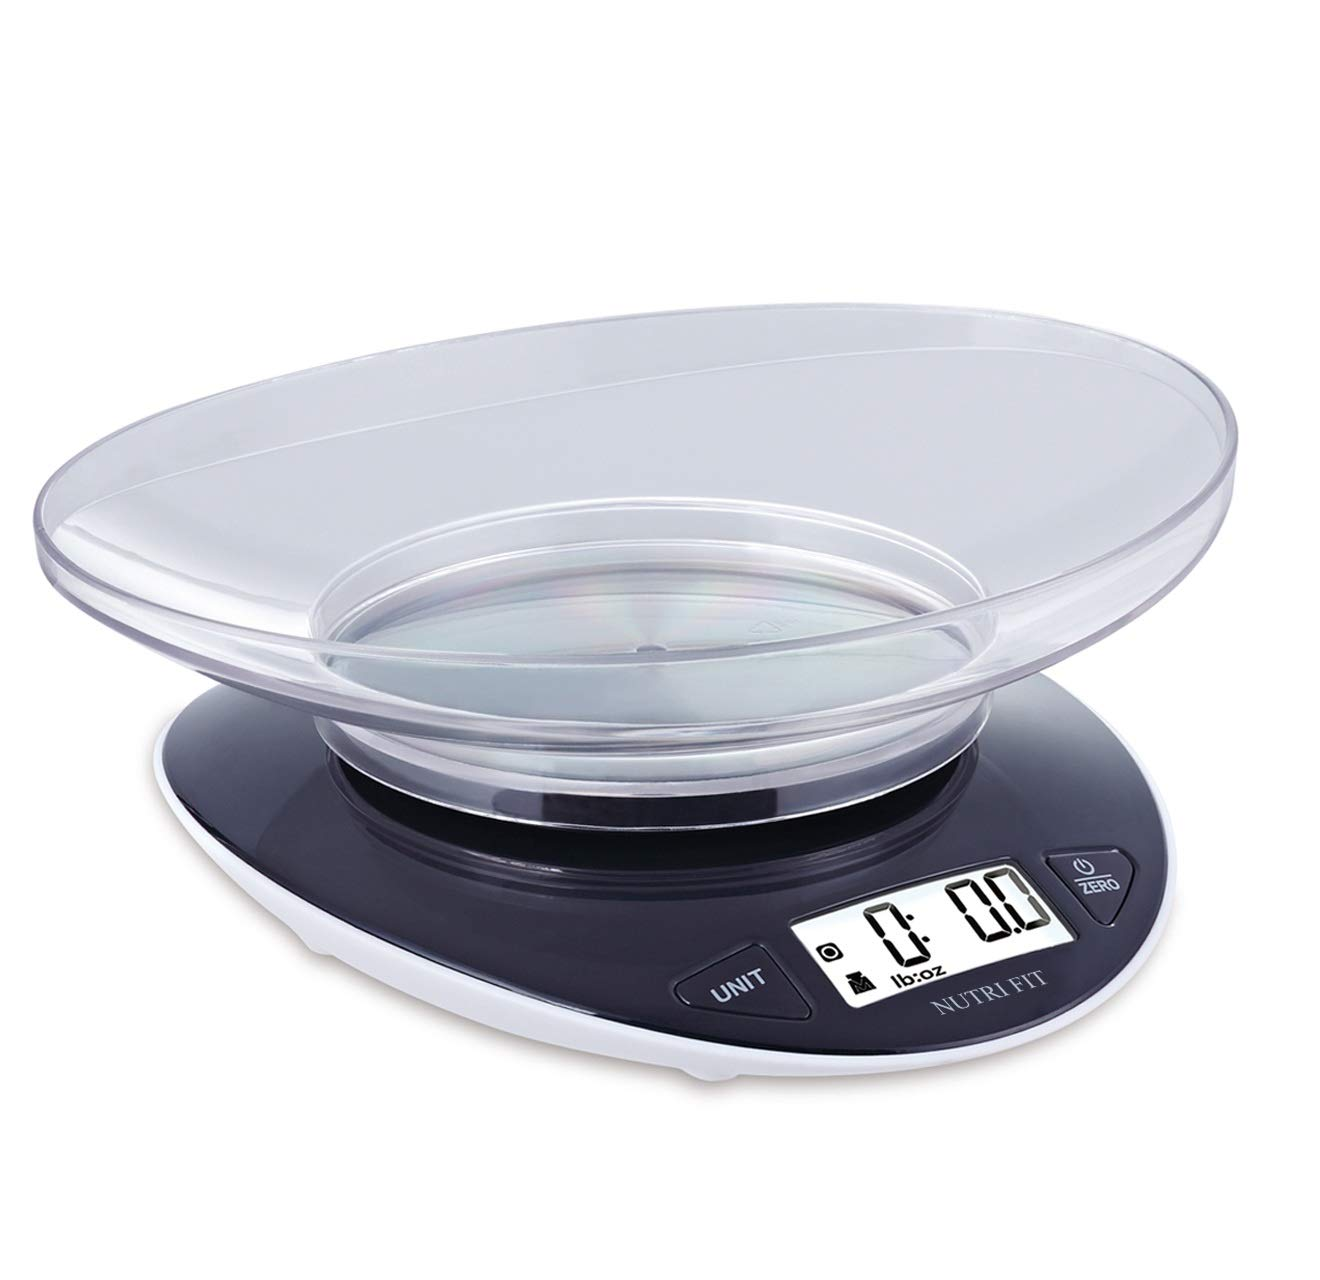 NUTRI FIT Digital Kitchen Food Scale Weight in Grams and Ounces for Cooking and Baking with 0.8L Removable Bowl High Precison for Coffee Vegetable Meat Cake, Black